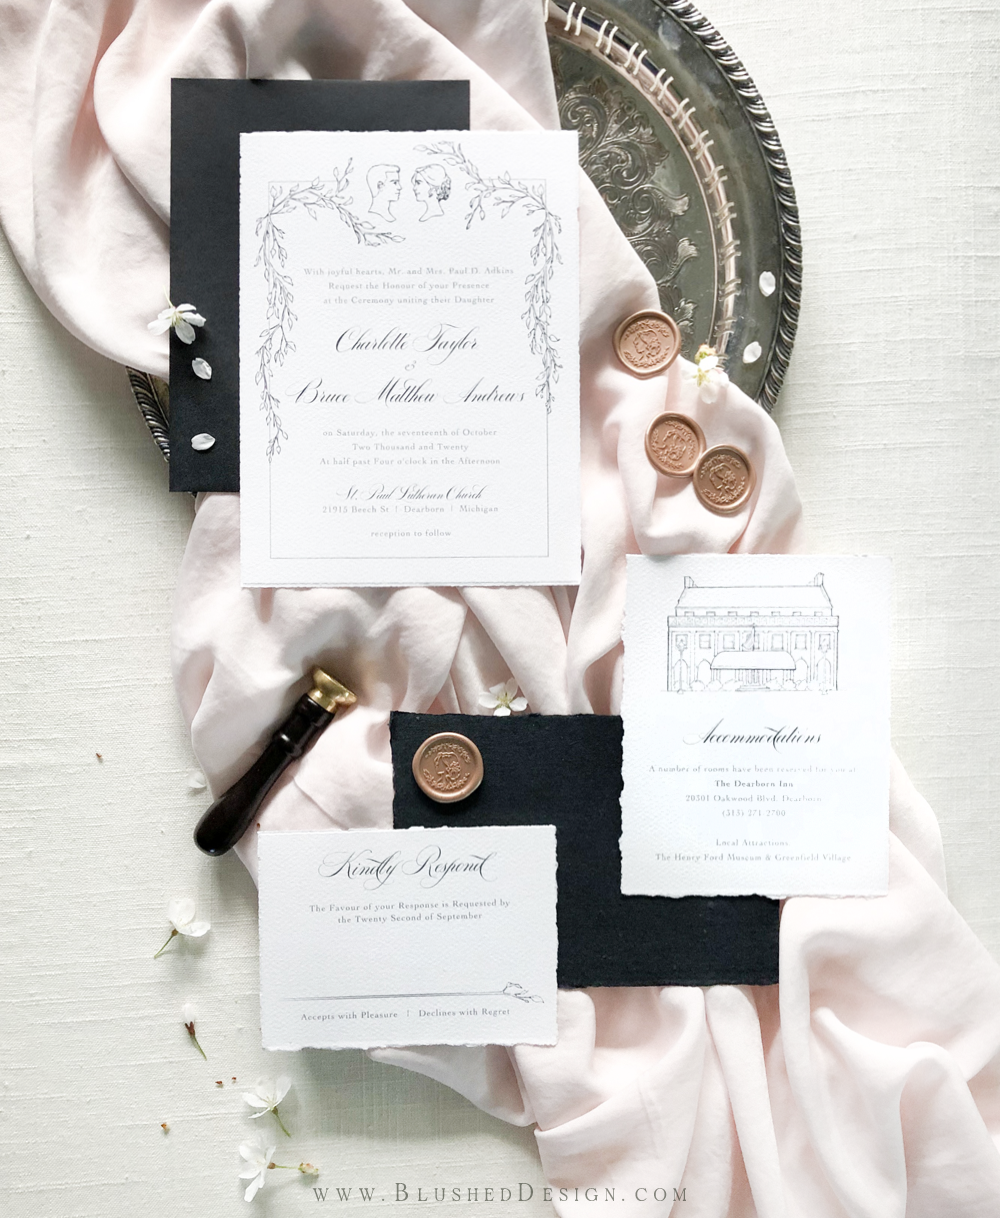 Elegant wedding invtations with stately calligraphy, elegant illustrations and a unique portrait for this elegant wedding.  Black envelopes set the state apart and allow the wax seals for this elegant invitation suite to really pop. #elegantwedding #estatewedding #romanticweddinginvitations #luxurywedding